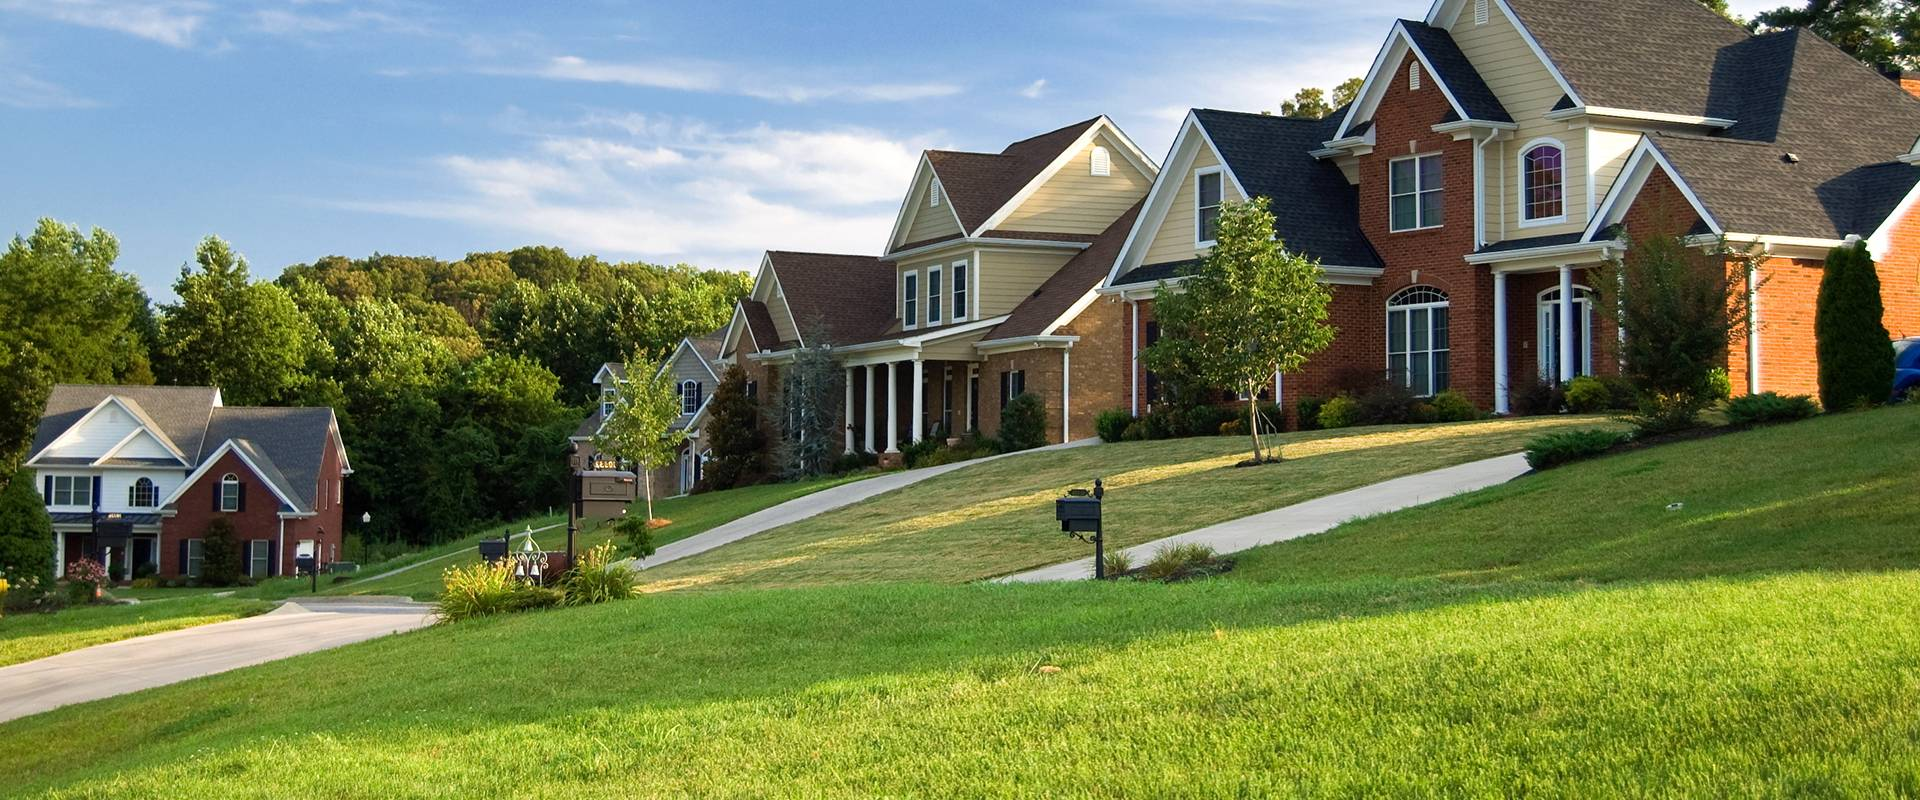 houses with nice green lawns